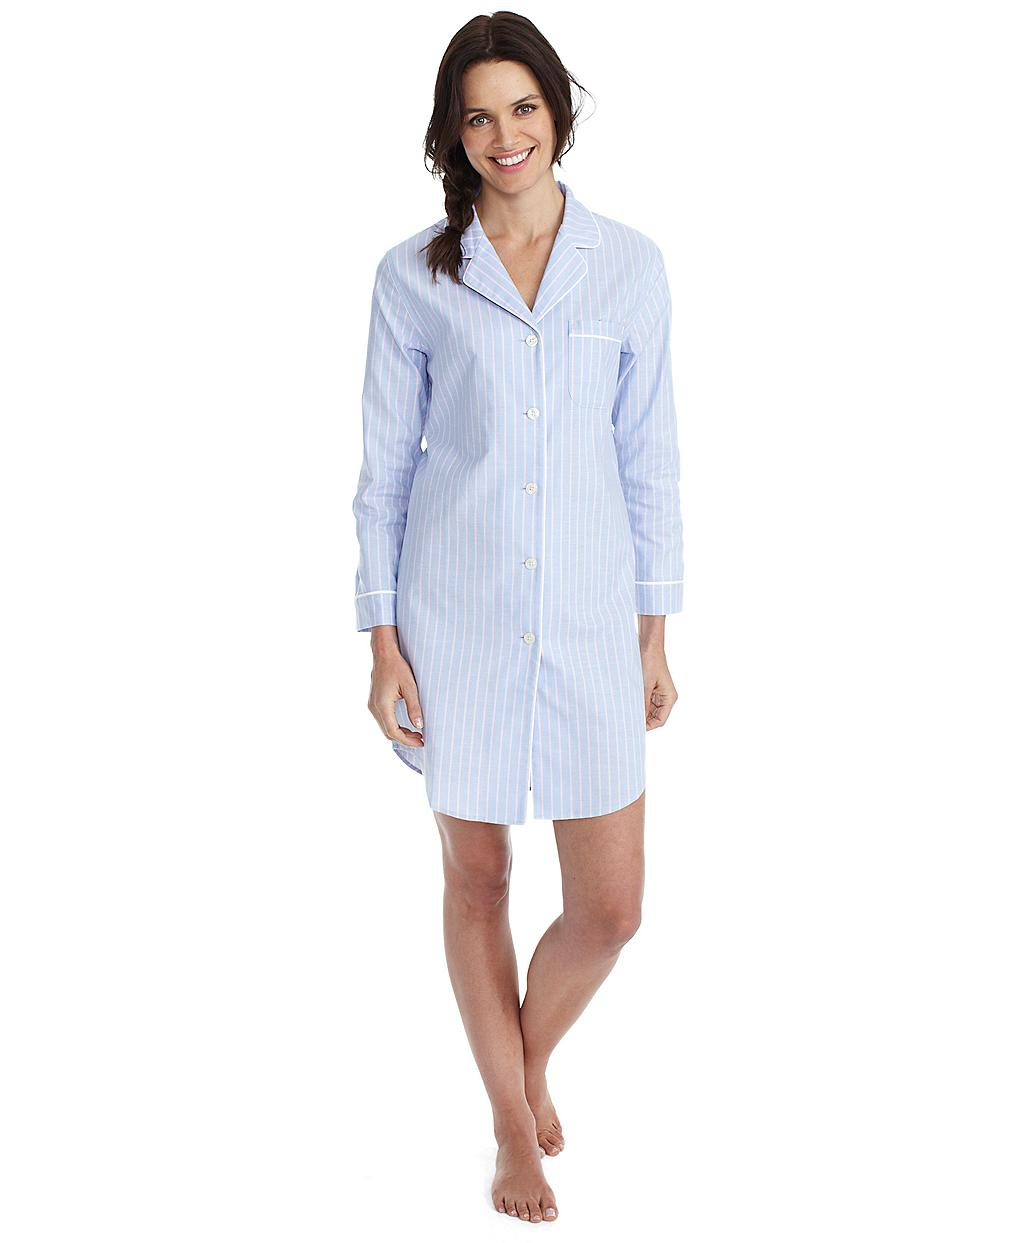 Lyst - Brooks Brothers Oxford Stripe Nightshirt in Blue 4743aa473